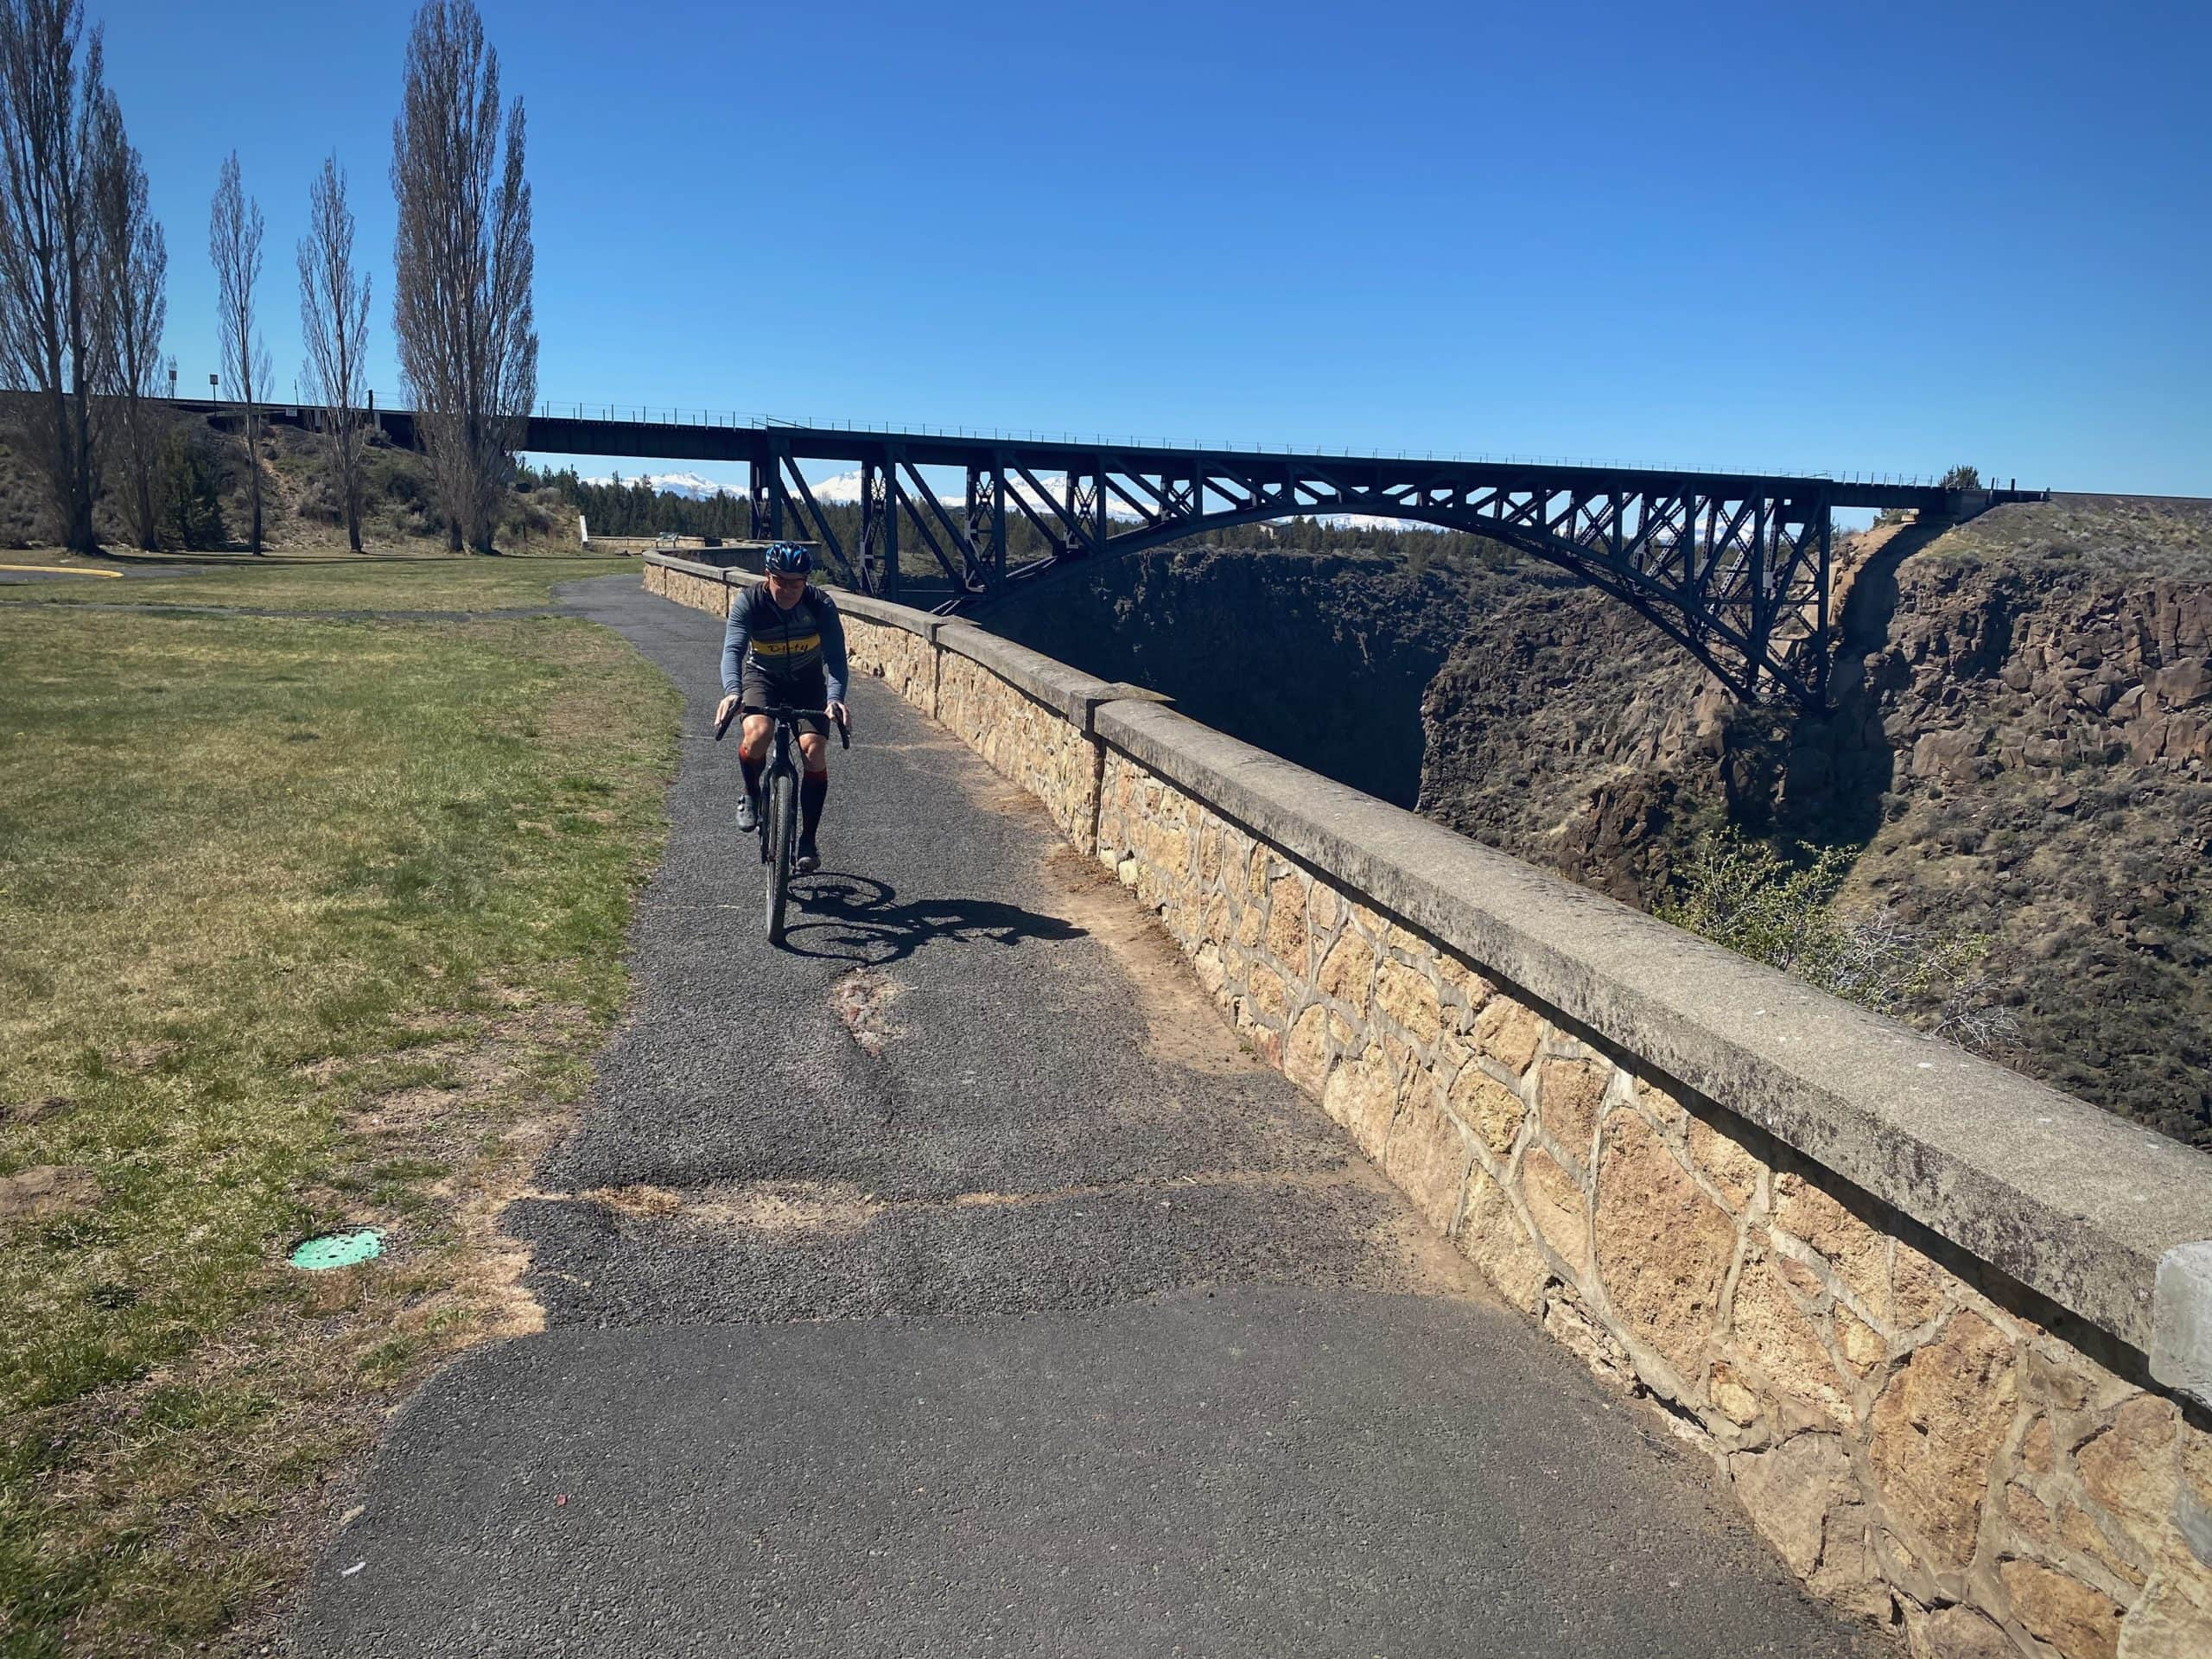 Cyclist riding paved path with the historic Oregon Trunk Rail Lineway bridge in the background.